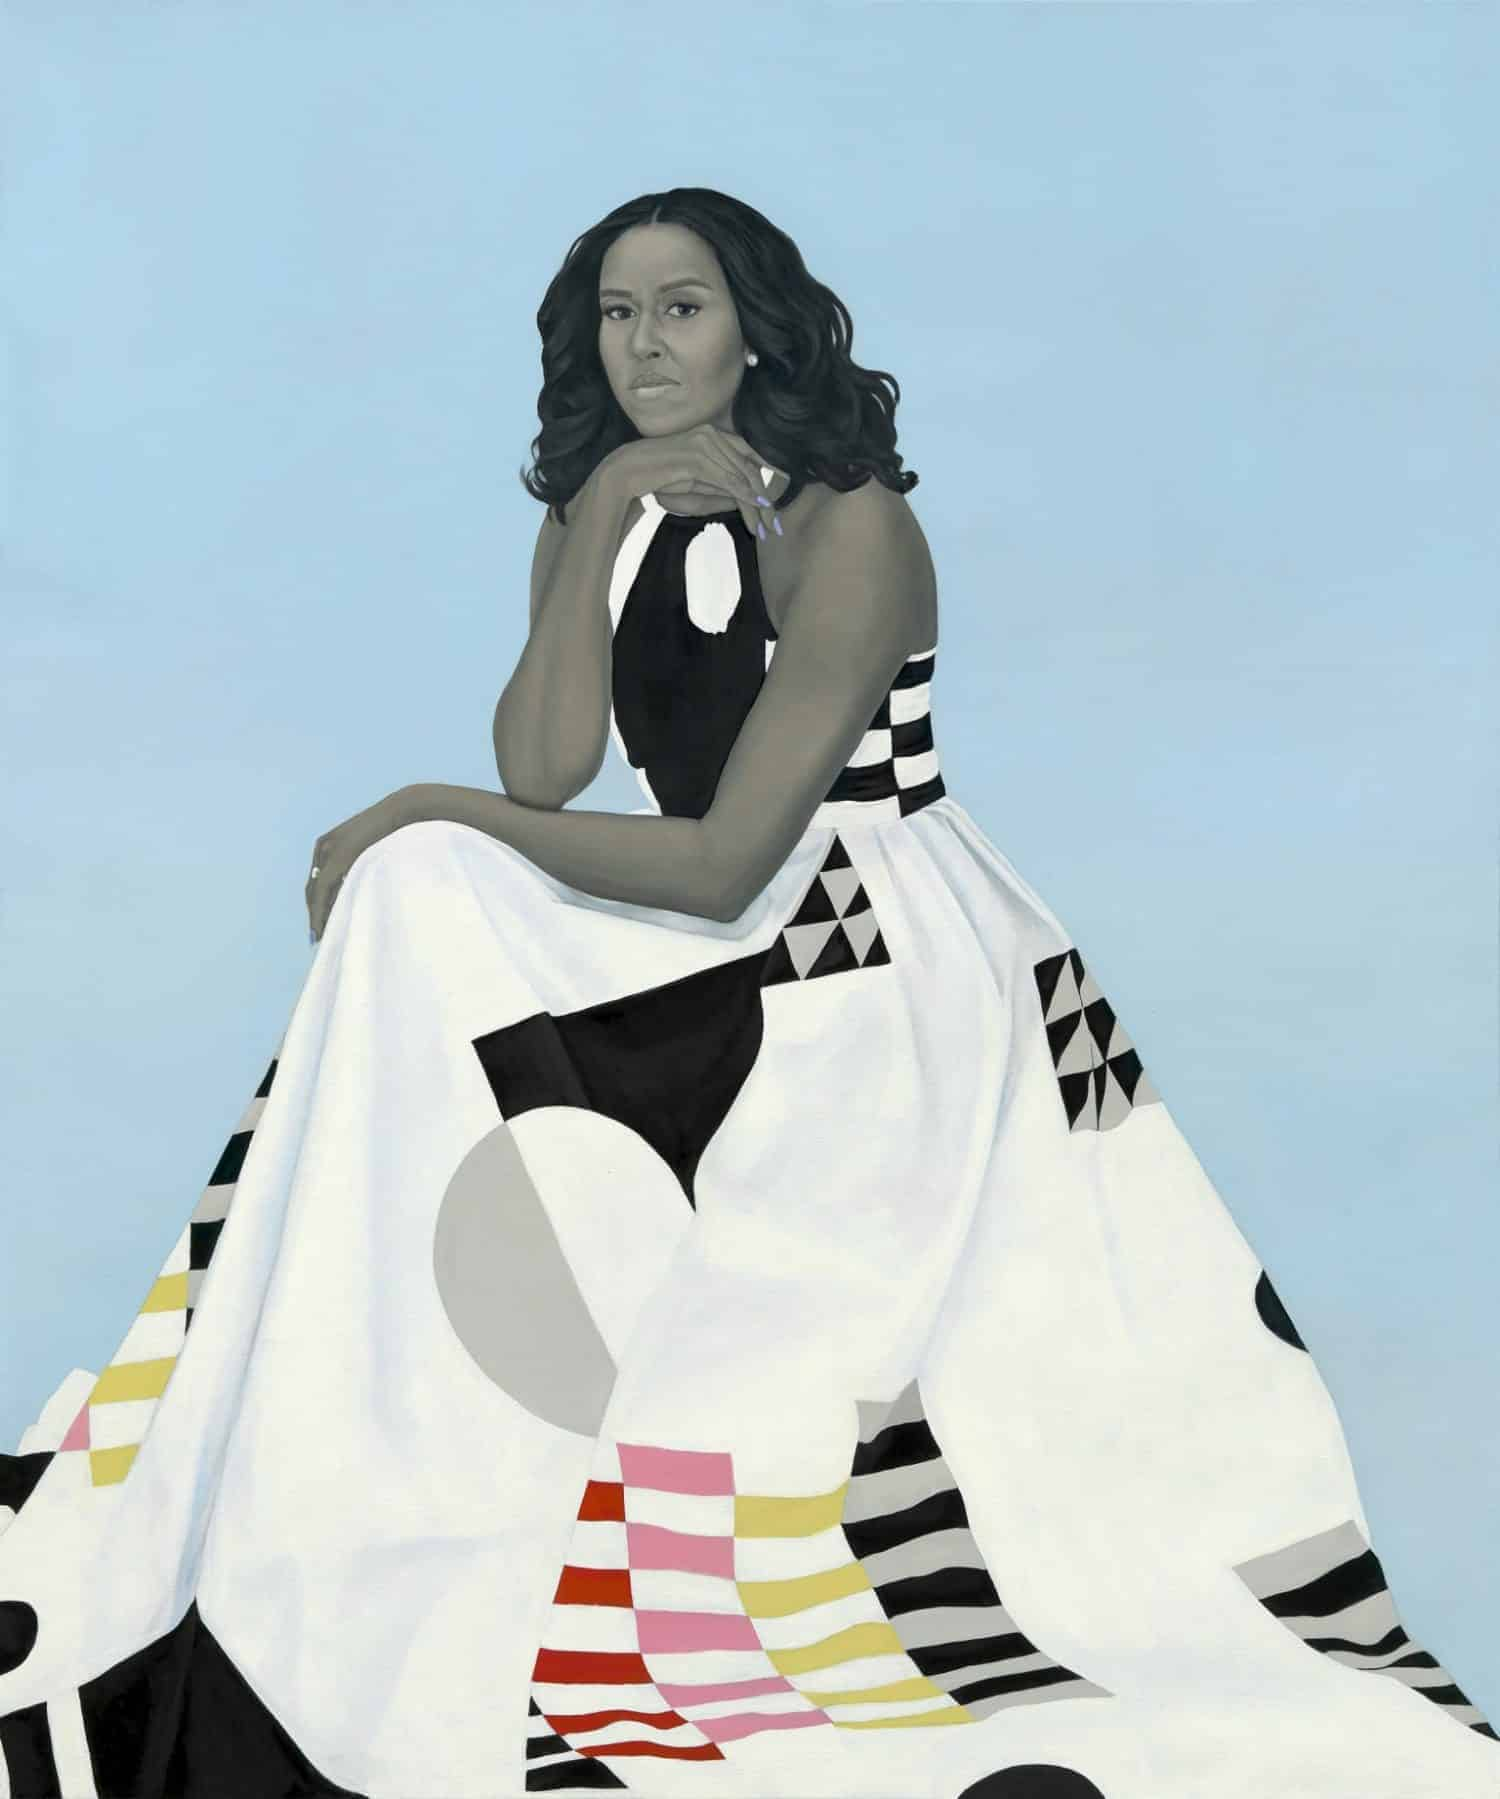 Michelle LaVaughn Robinson Obama by Amy Sherald, oil on linen, 2018. Courtesy National Portrait Gallery, Smithsonian Institution.